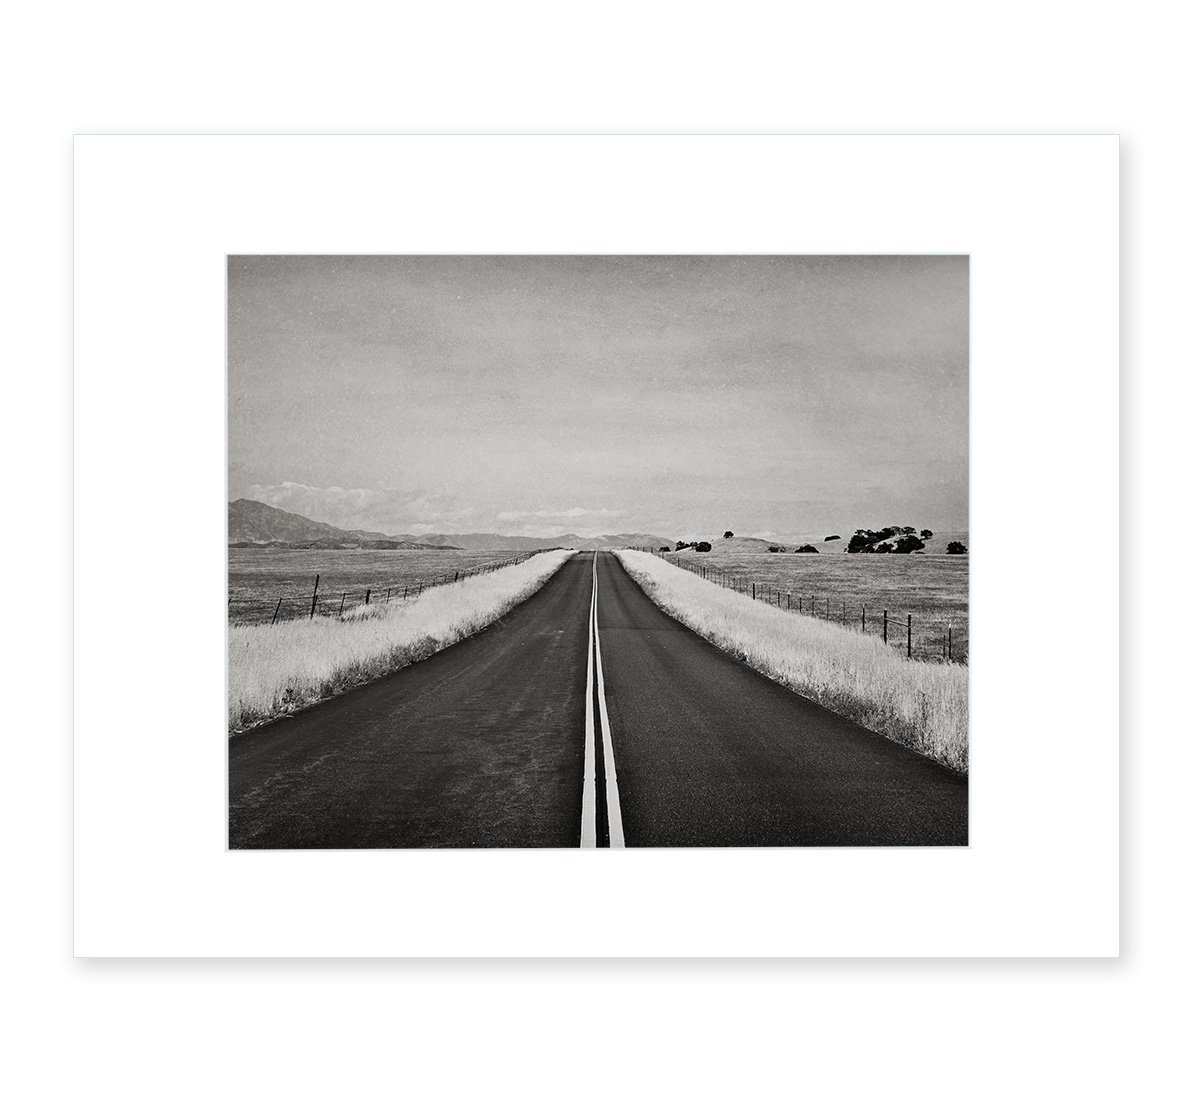 Black and White Rural Landscape Photography, Open Road Picture, Minimalist Wanderlust Wall Art, Rustic Americana Decor, 8x10 Matted Photographic Print (fits 11x14 frame), 'American Road Trip B&W' by Offley Green